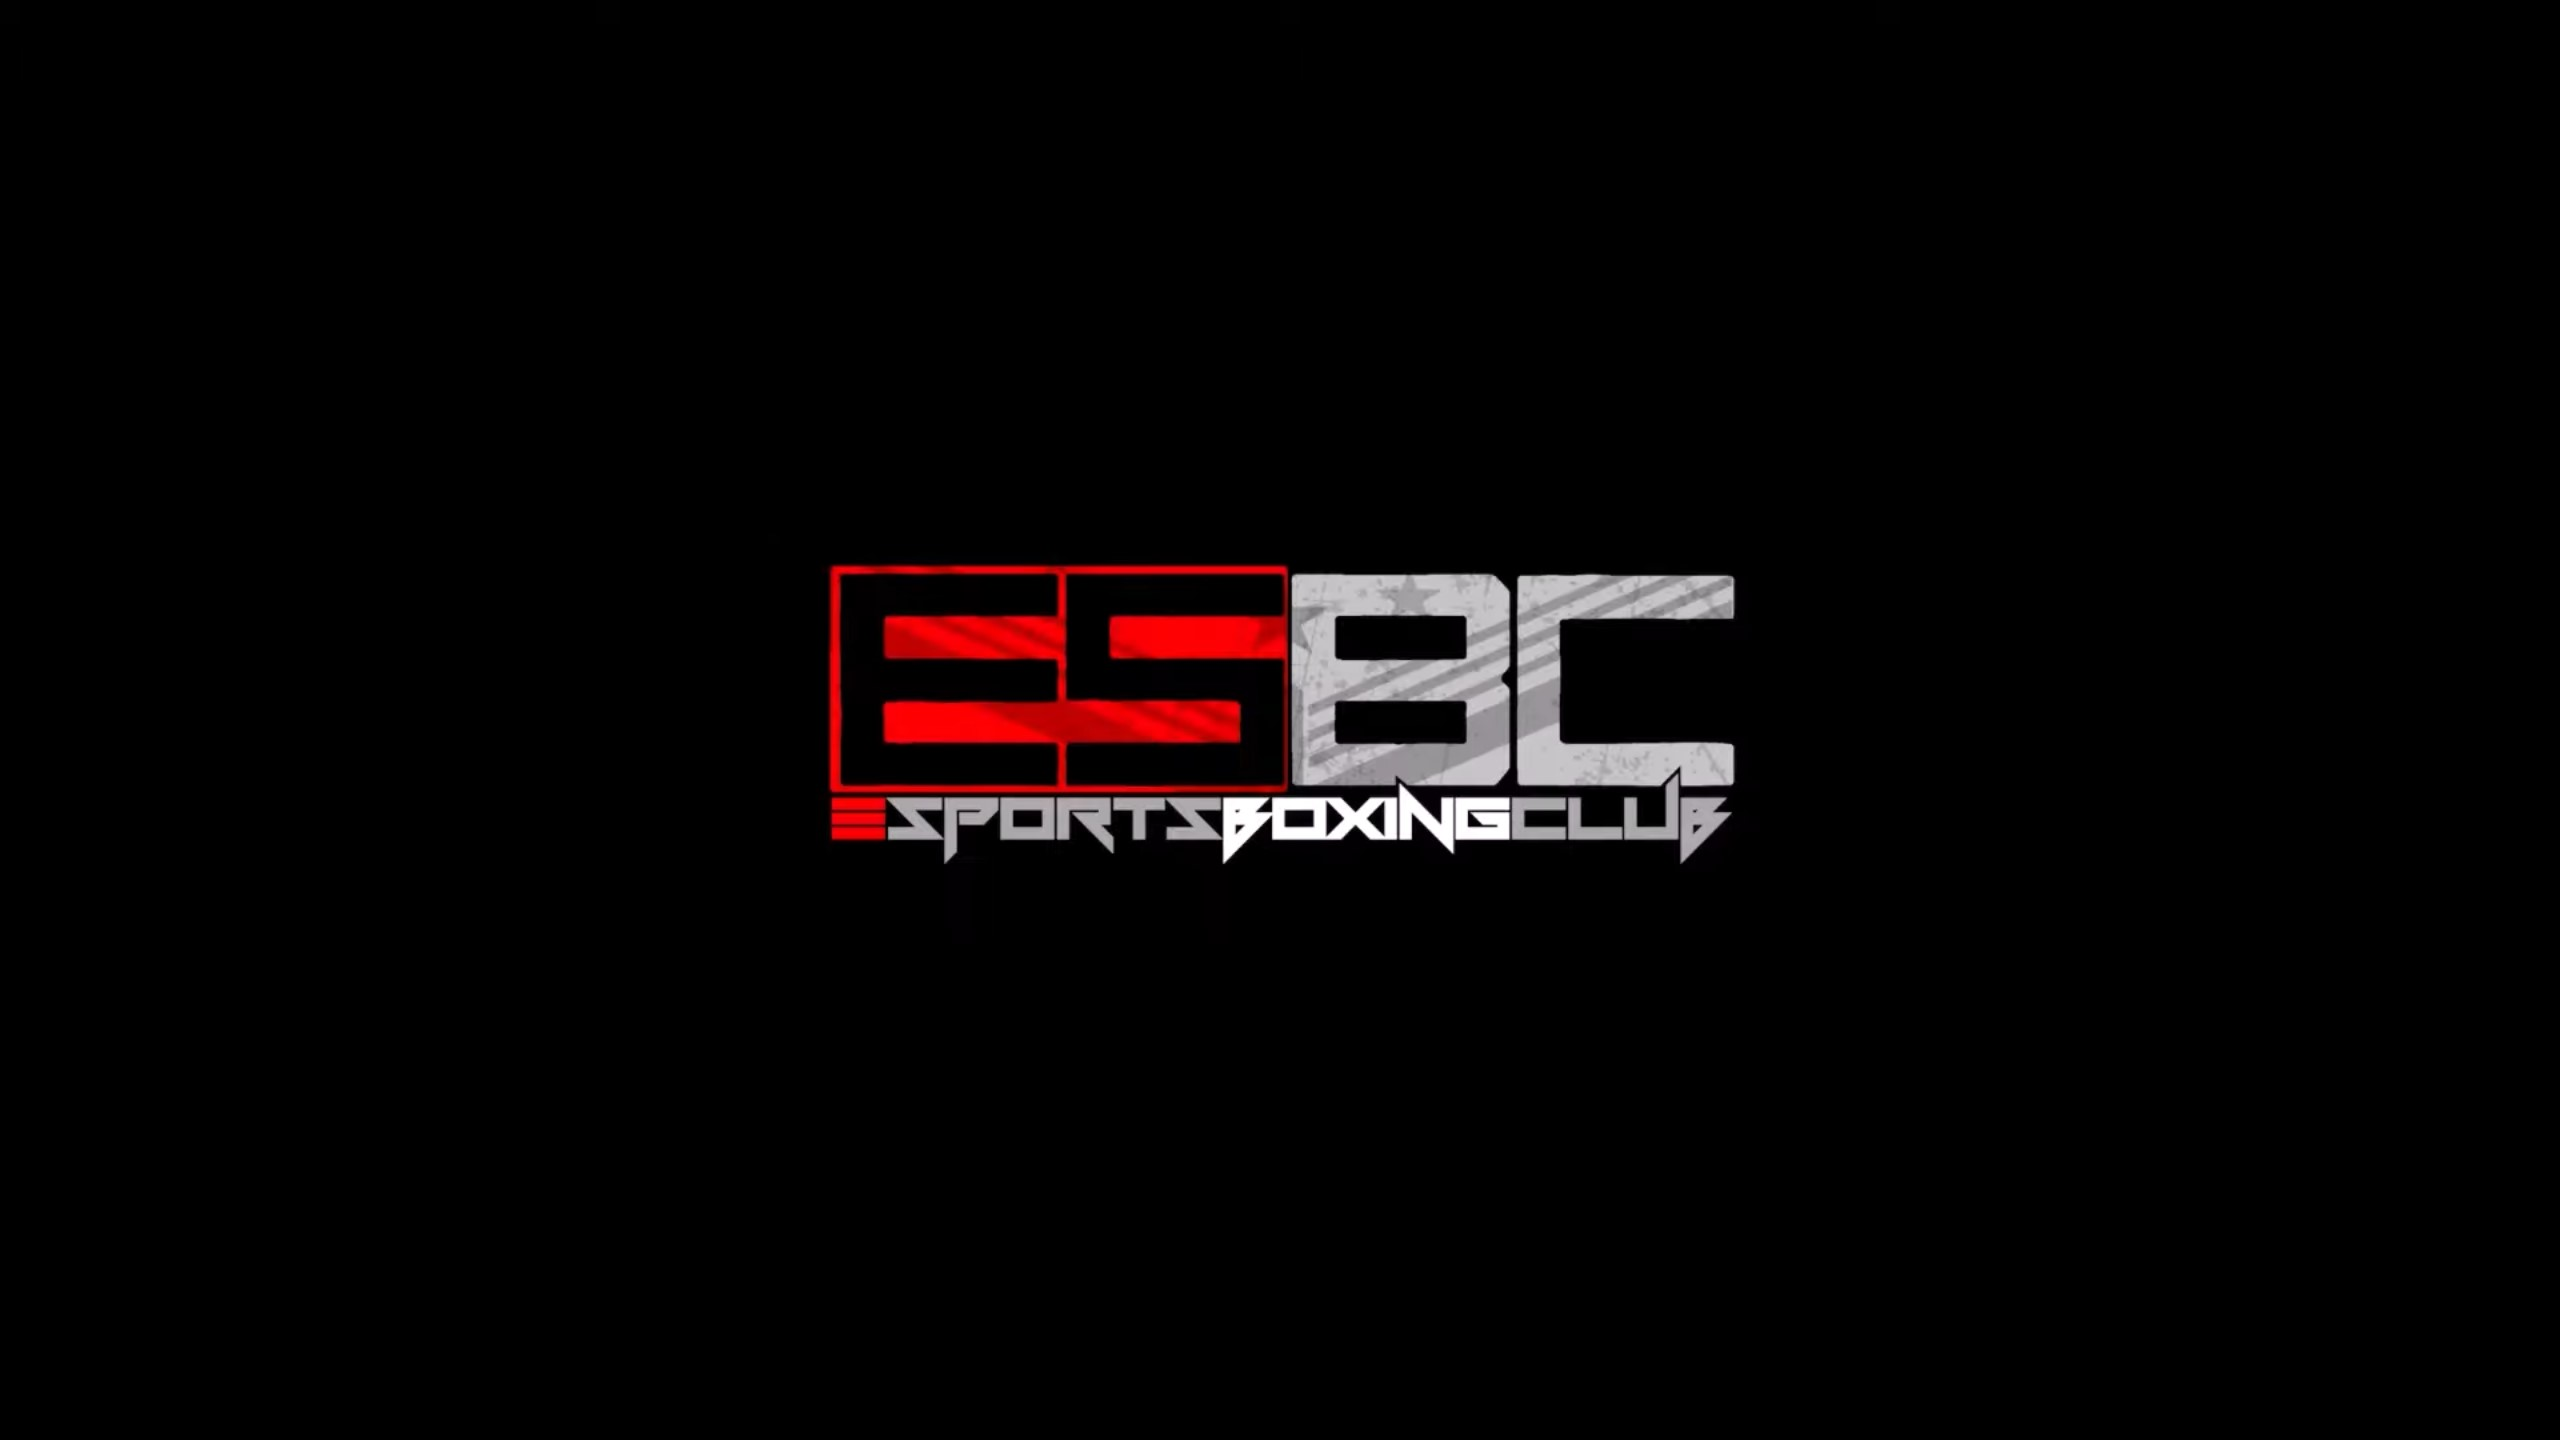 Tyson Fury's Character Model For Upcoming Boxing Game ESBC Revealed - DualShockers